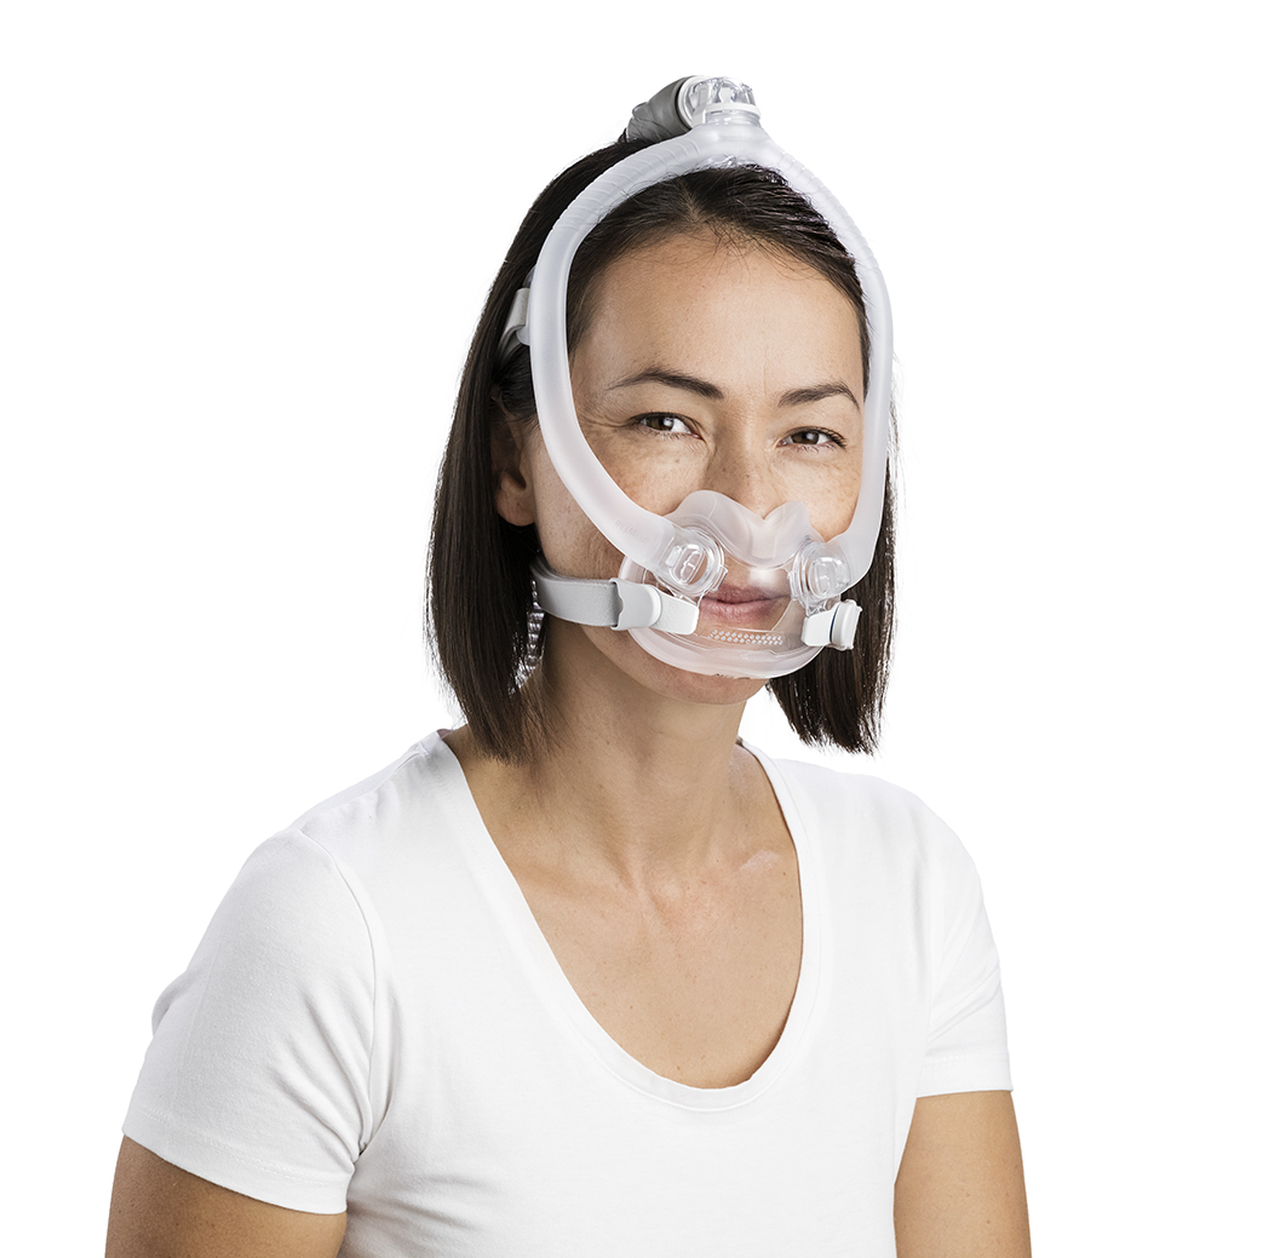 Picture of Airfit F30i fullface mask